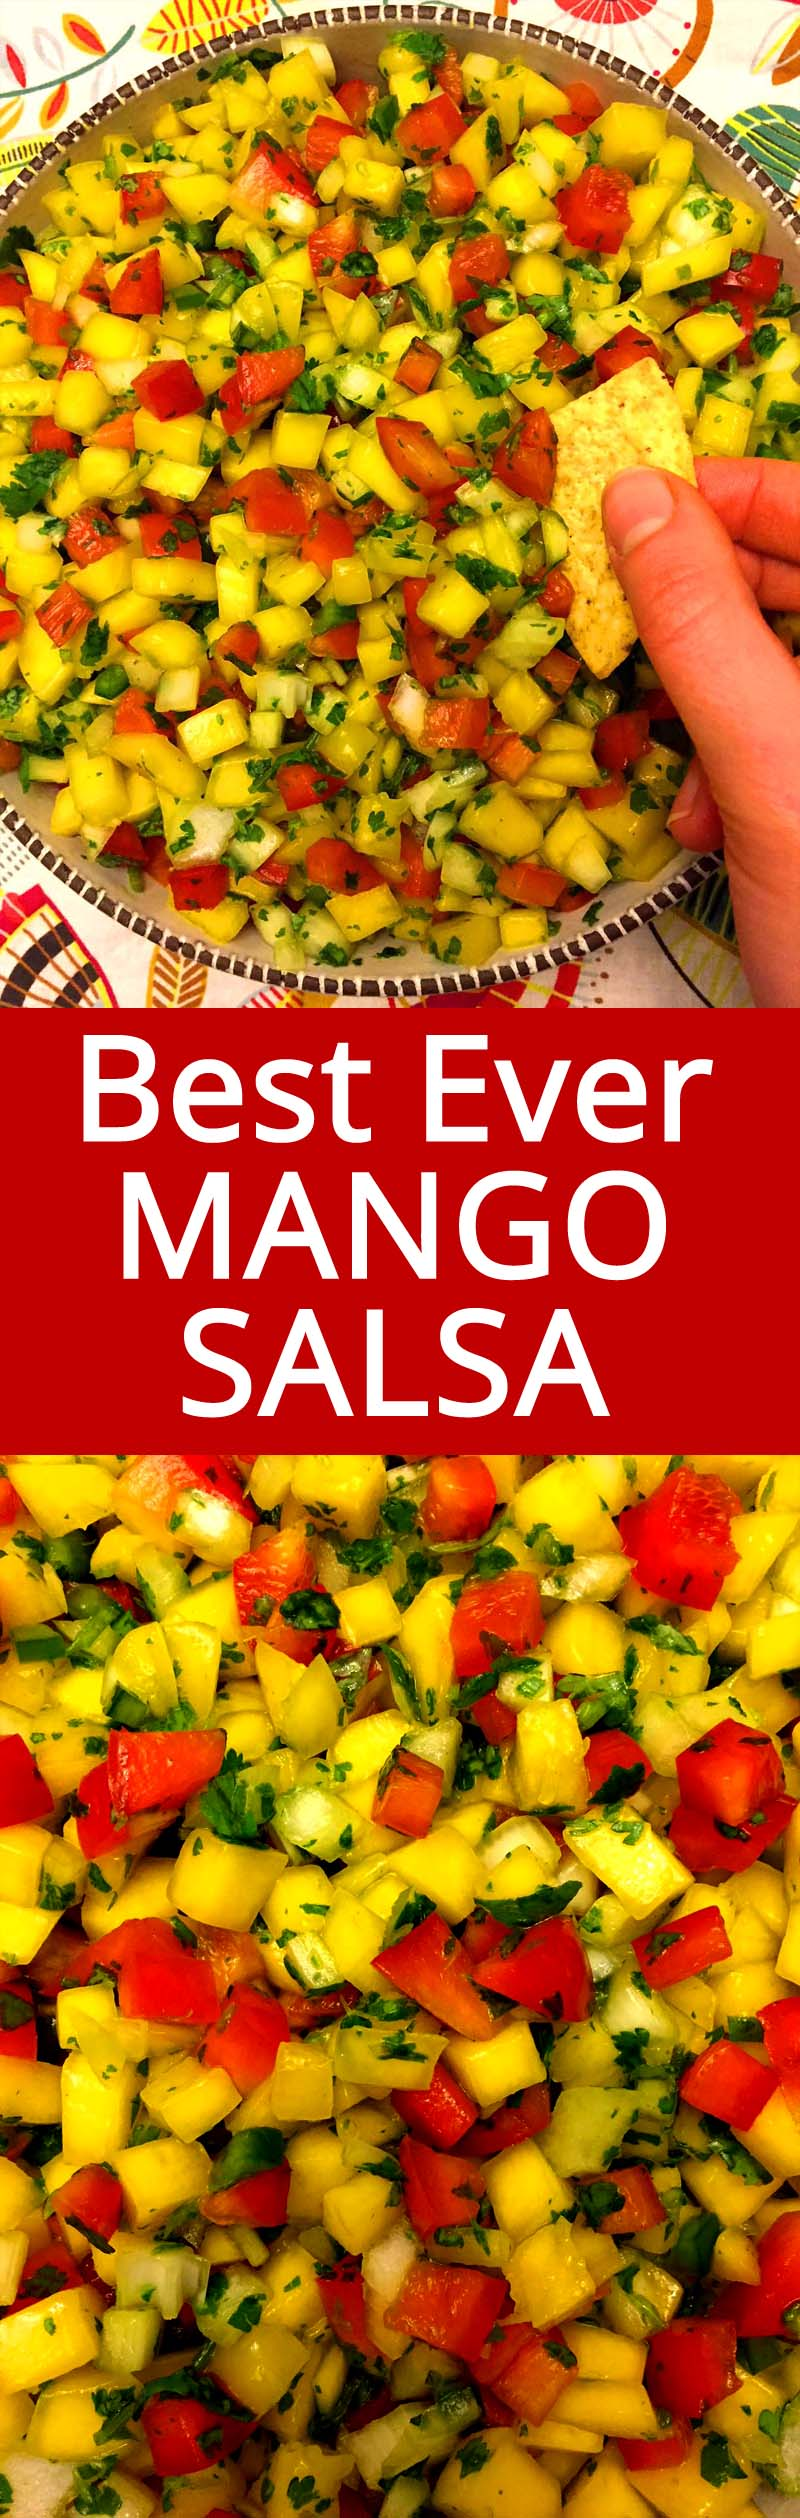 This is the best mango salsa recipe ever! I can eat a huge bowl in one sitting!  Mango salsa is so addictive!